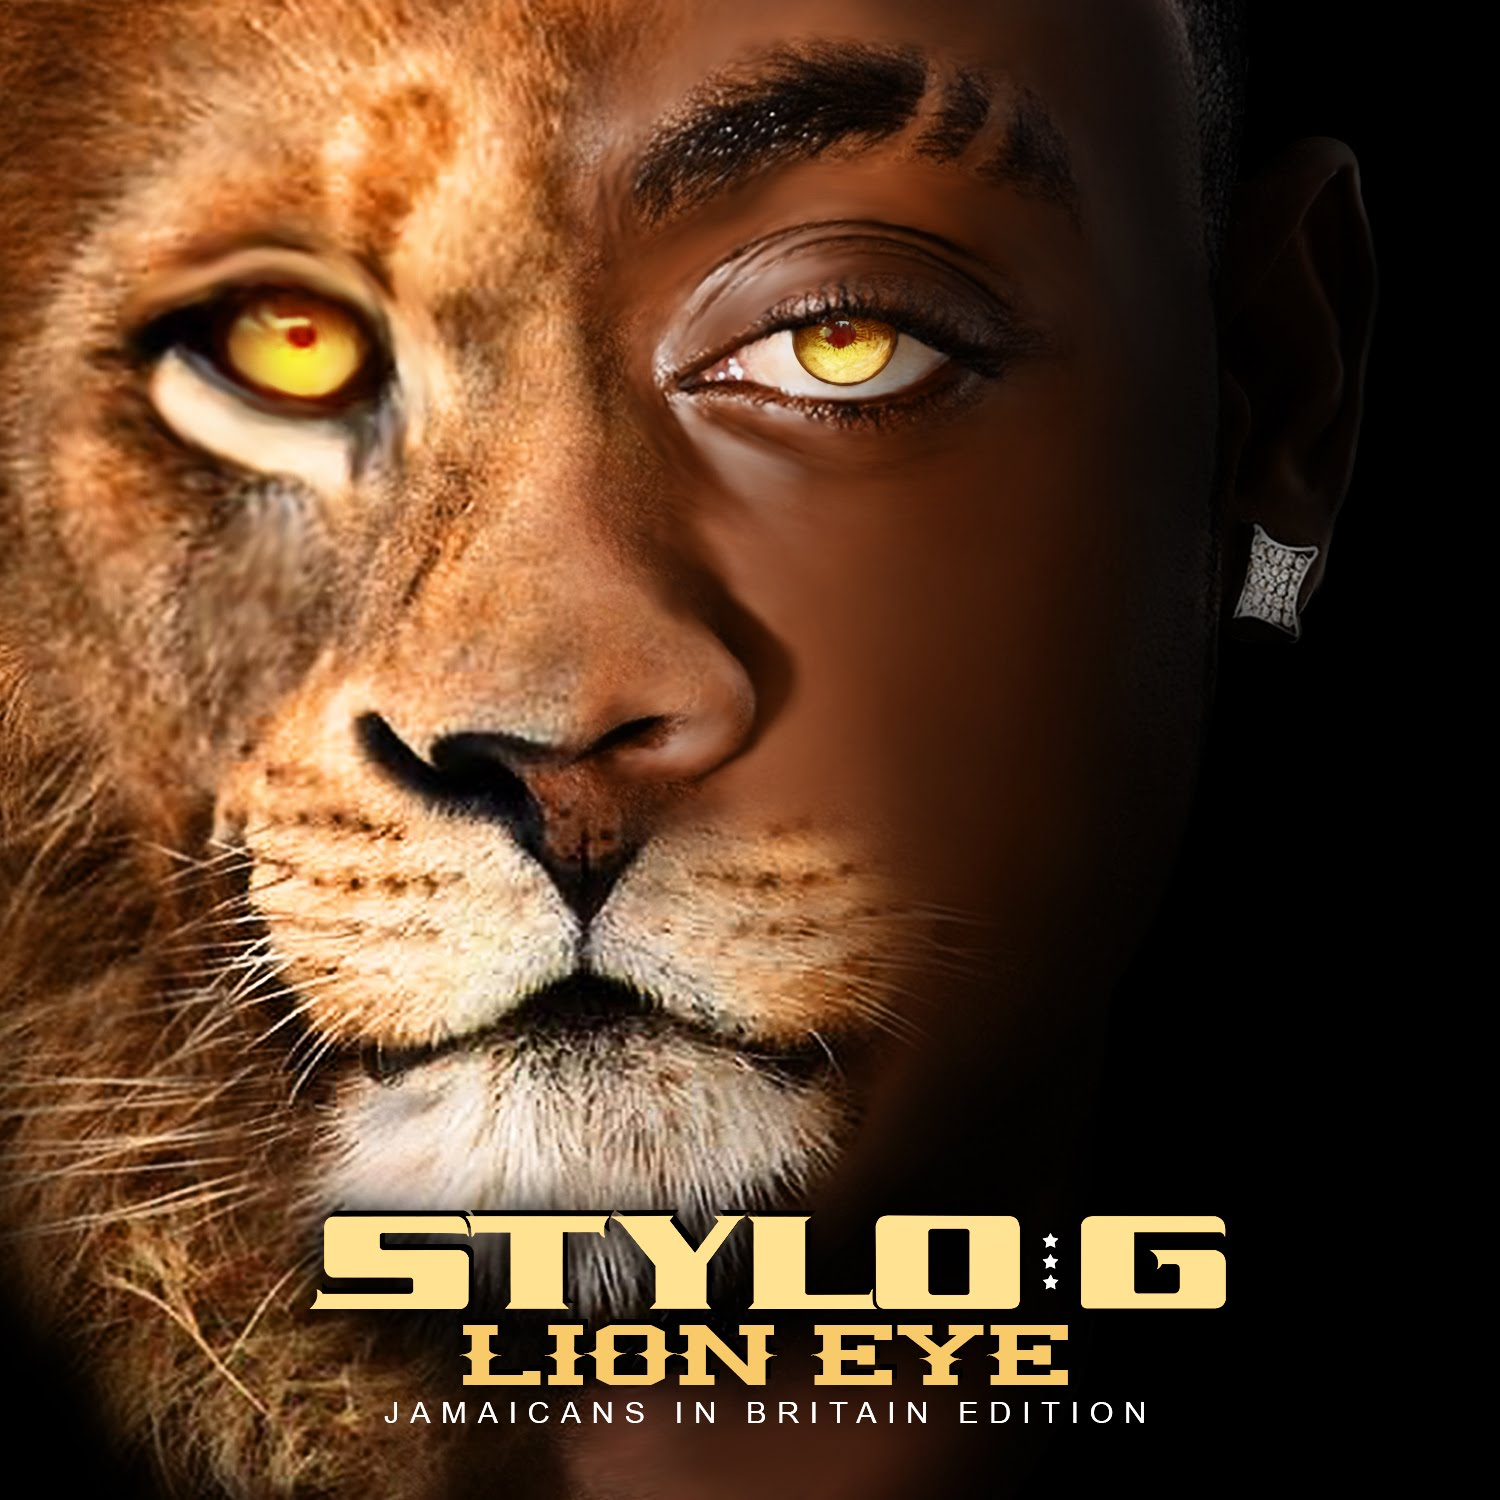 stylo g - lion eye mixtape